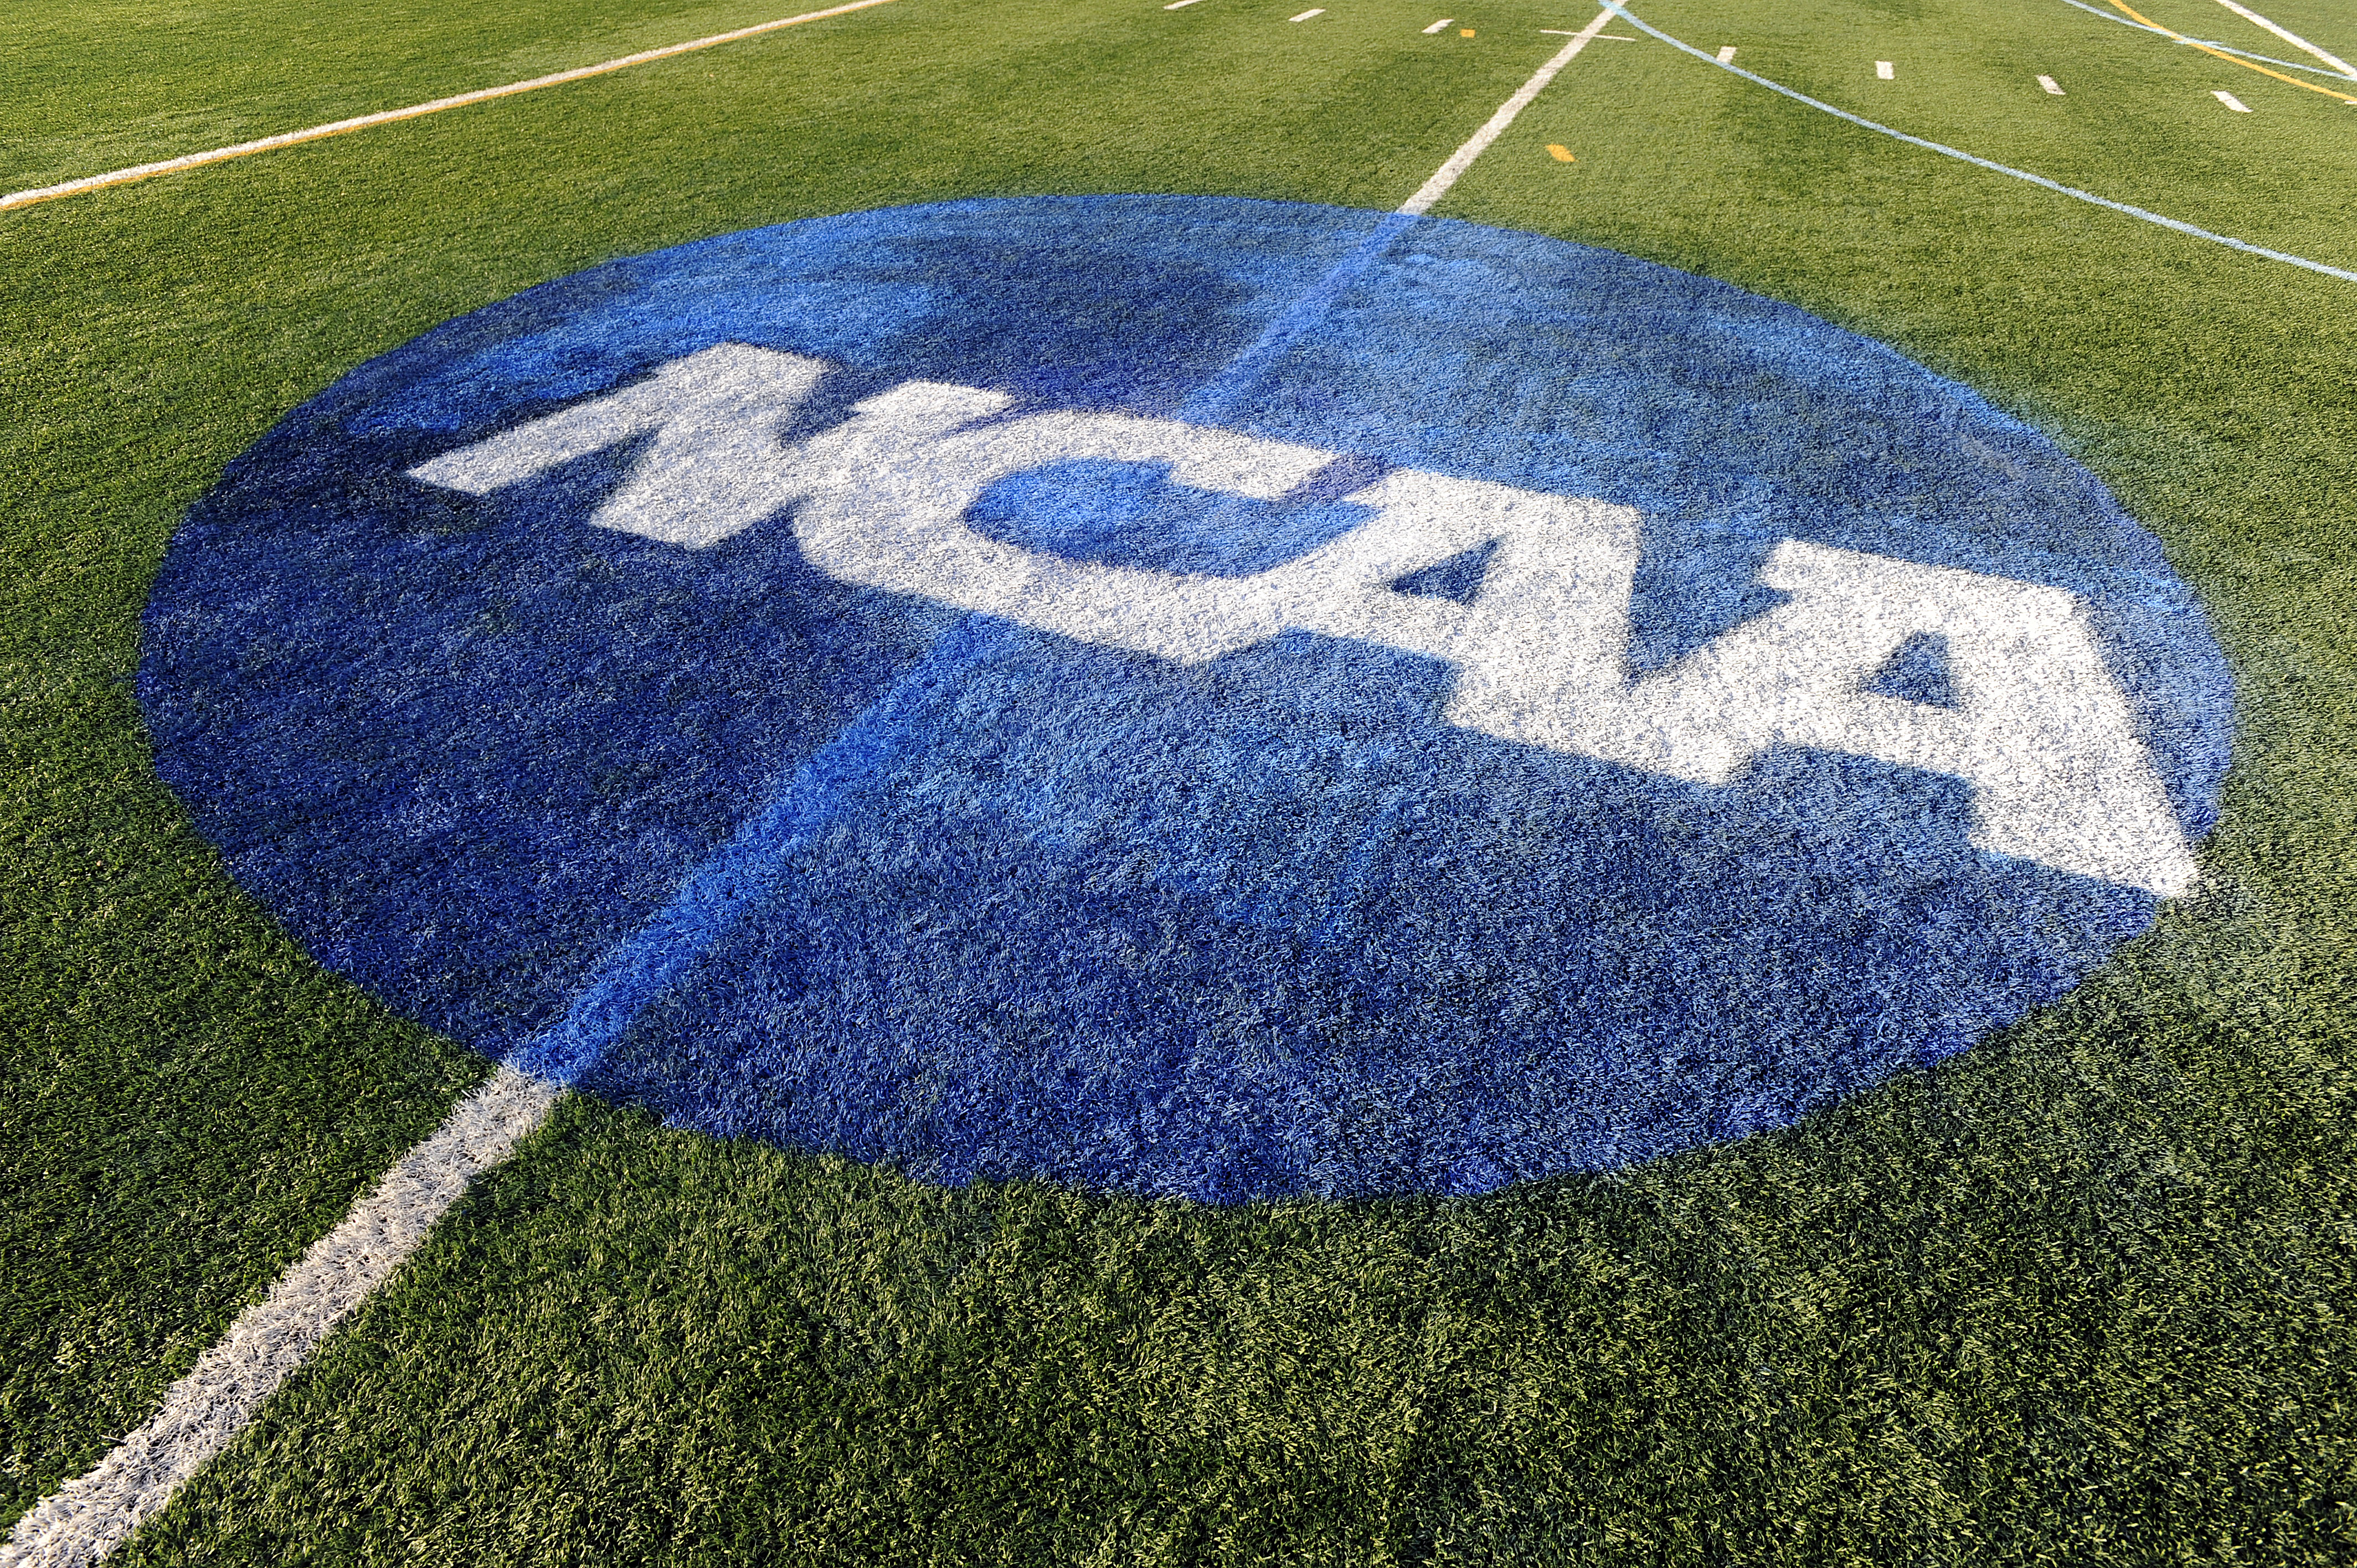 The NCAA logo is shown on the field where the Maryland Terrapins played against the North Carolina Tar Heels during the 2013 NCAA Division I Women's Lacrosse Championship at Villanova Stadium on May 26, 2013 in Villanova, Pennsylvania.